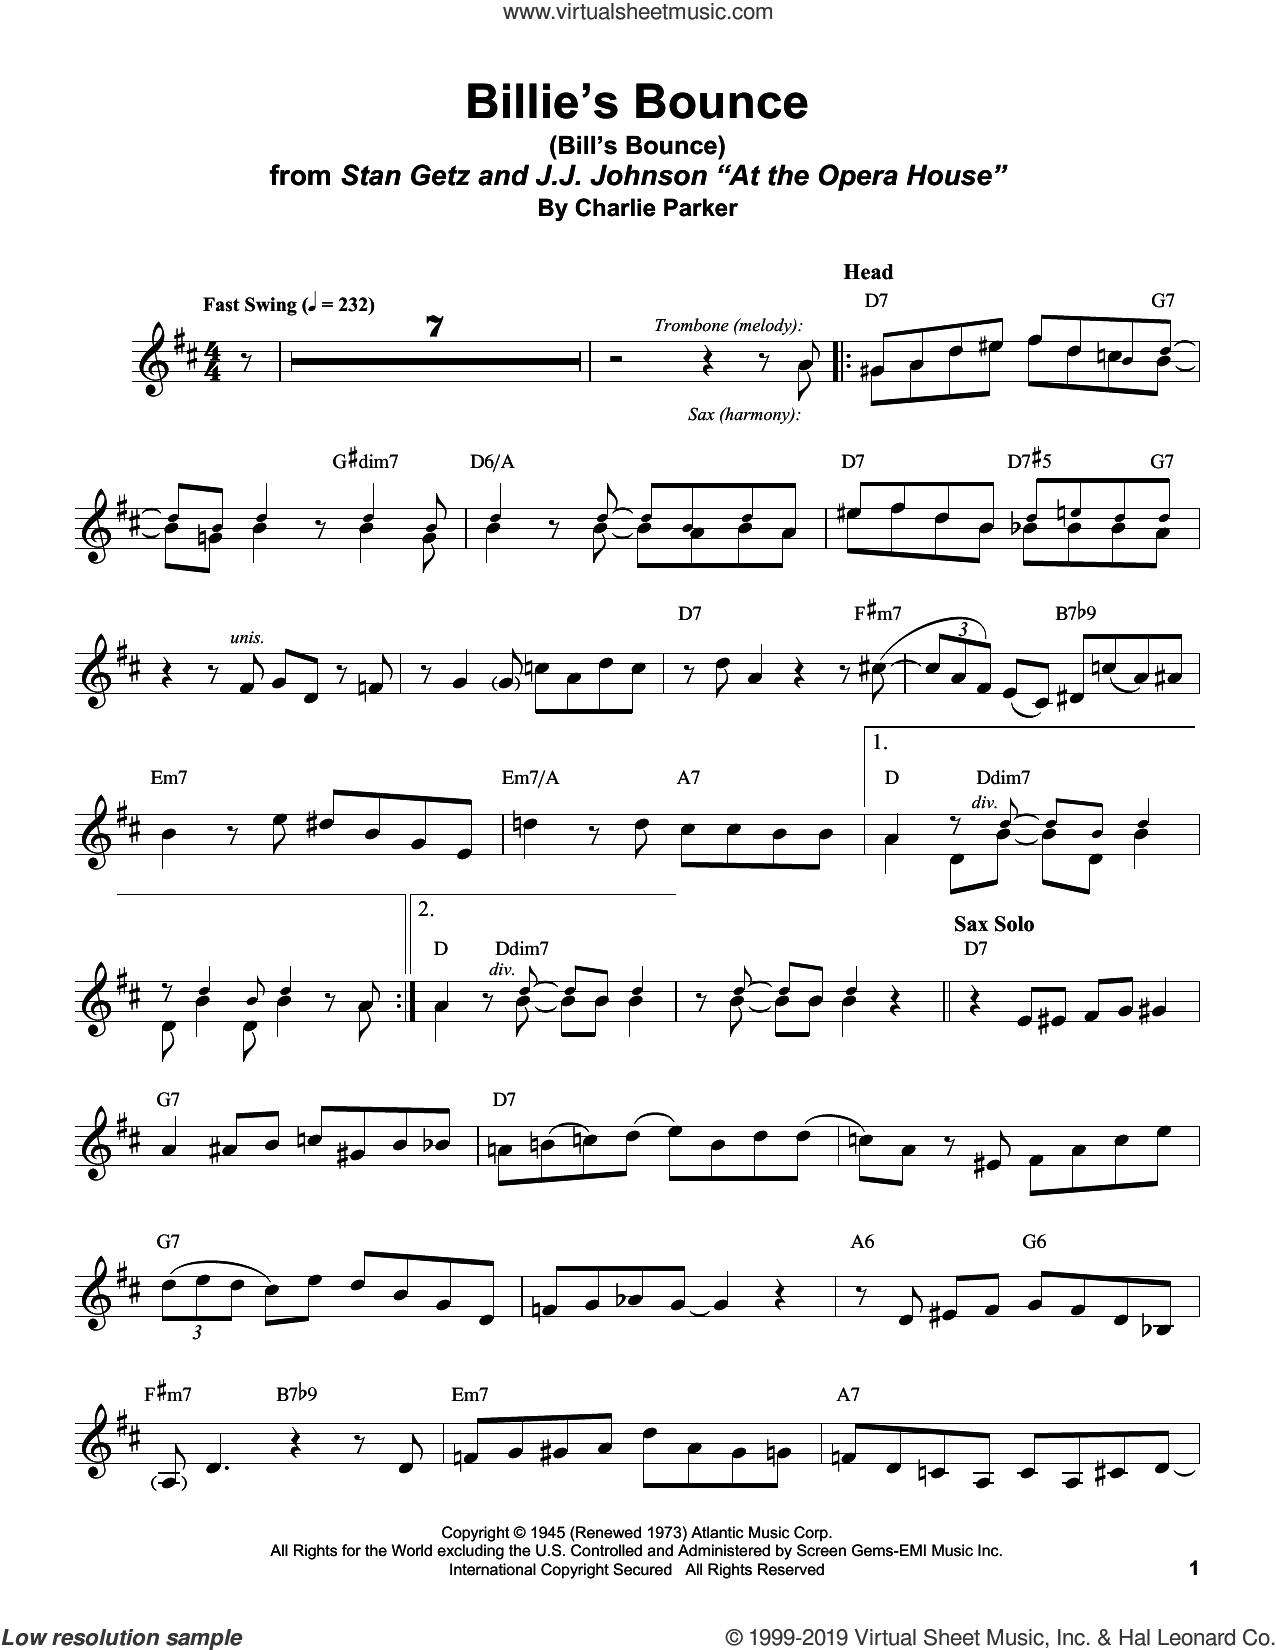 Billie's Bounce (Bill's Bounce) sheet music for alto saxophone (transcription) by Stan Getz and Charlie Parker, intermediate skill level